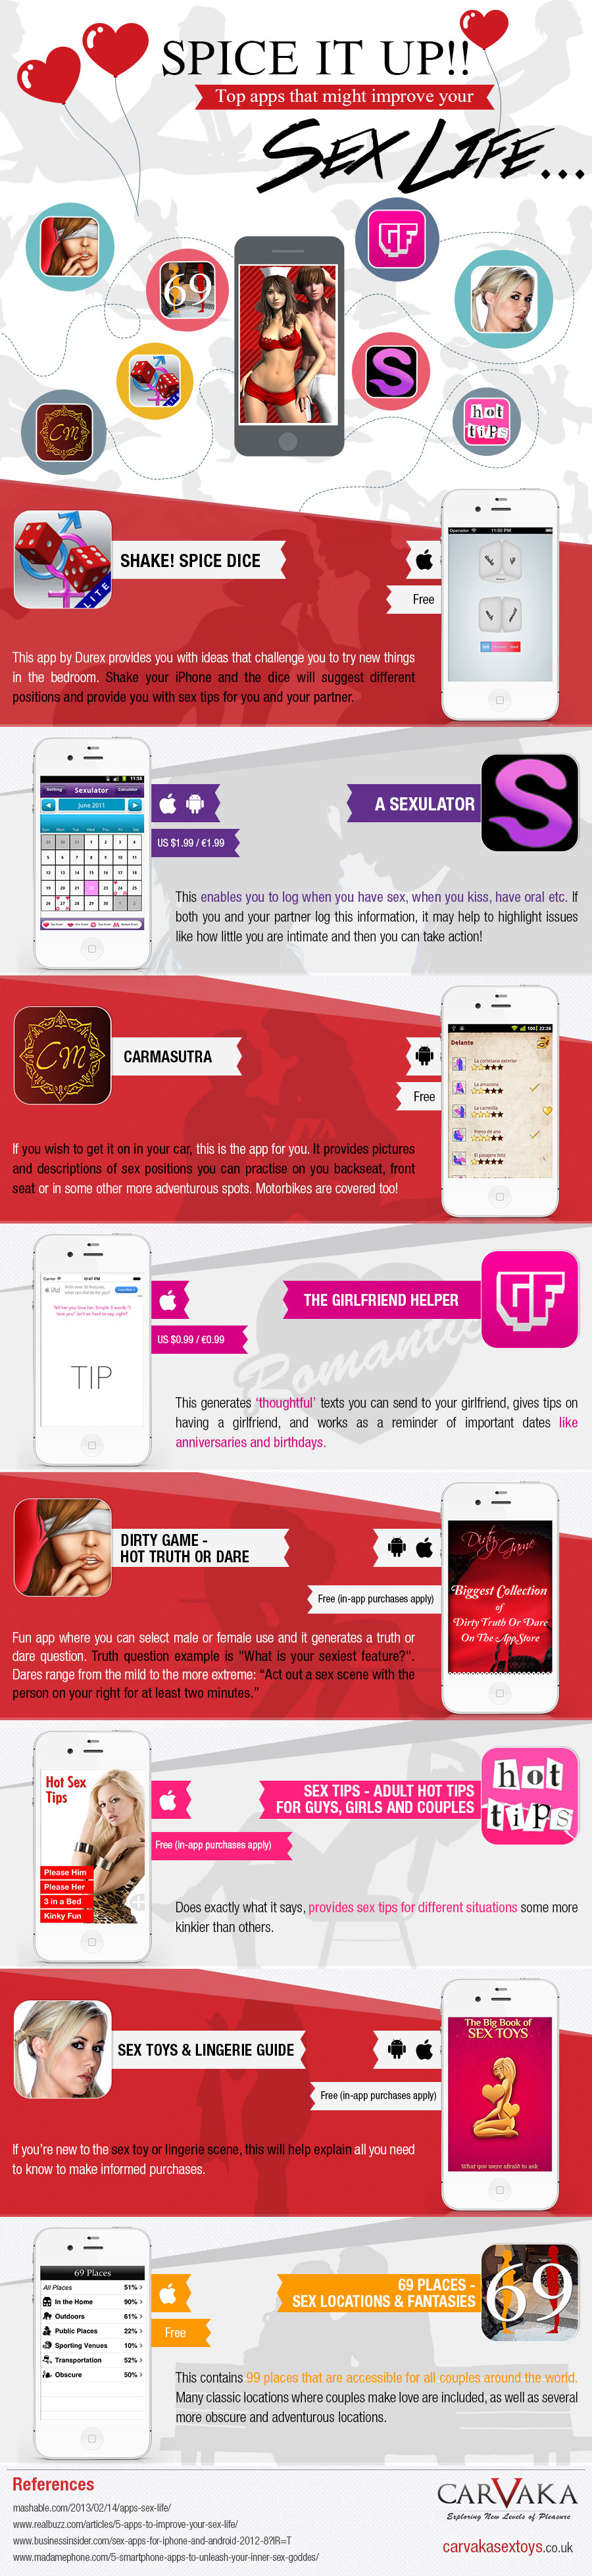 Apps to Improve Your Love Life12